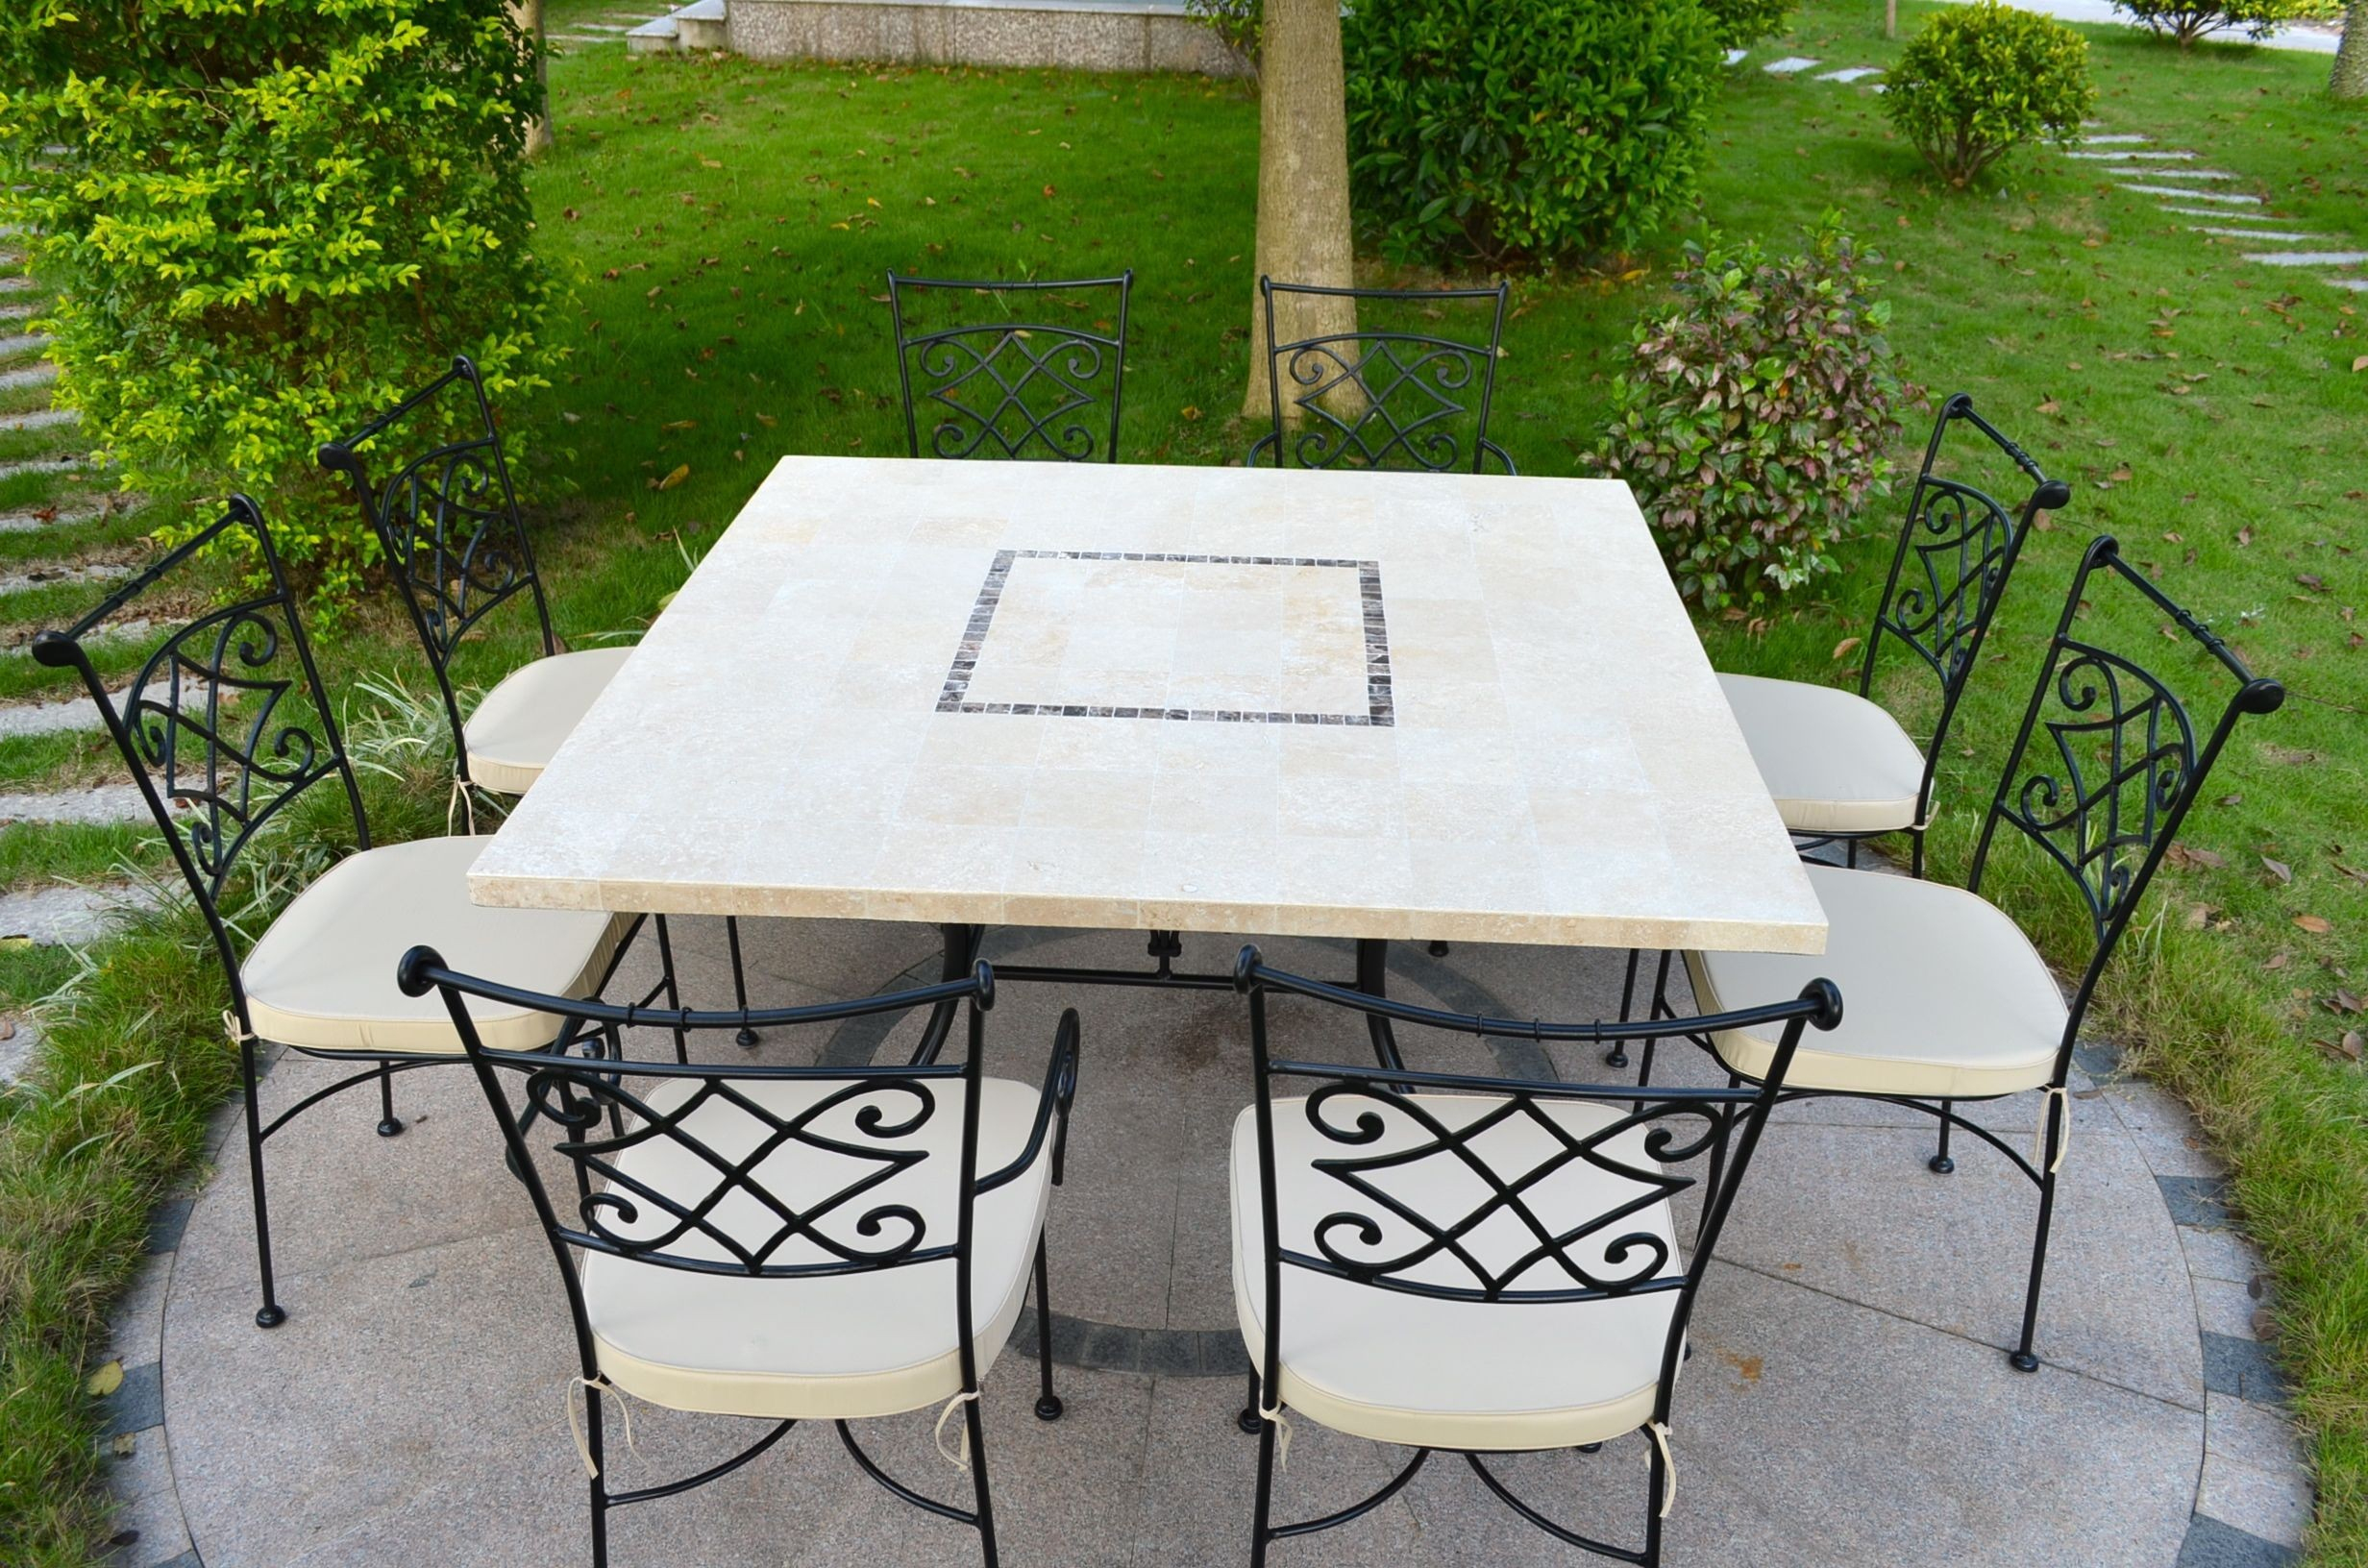 Table De Jardin En Pierre Mosaïque De Travertin Carrée 140 Capri encequiconcerne Table Jardin Marbre Fer Forgé